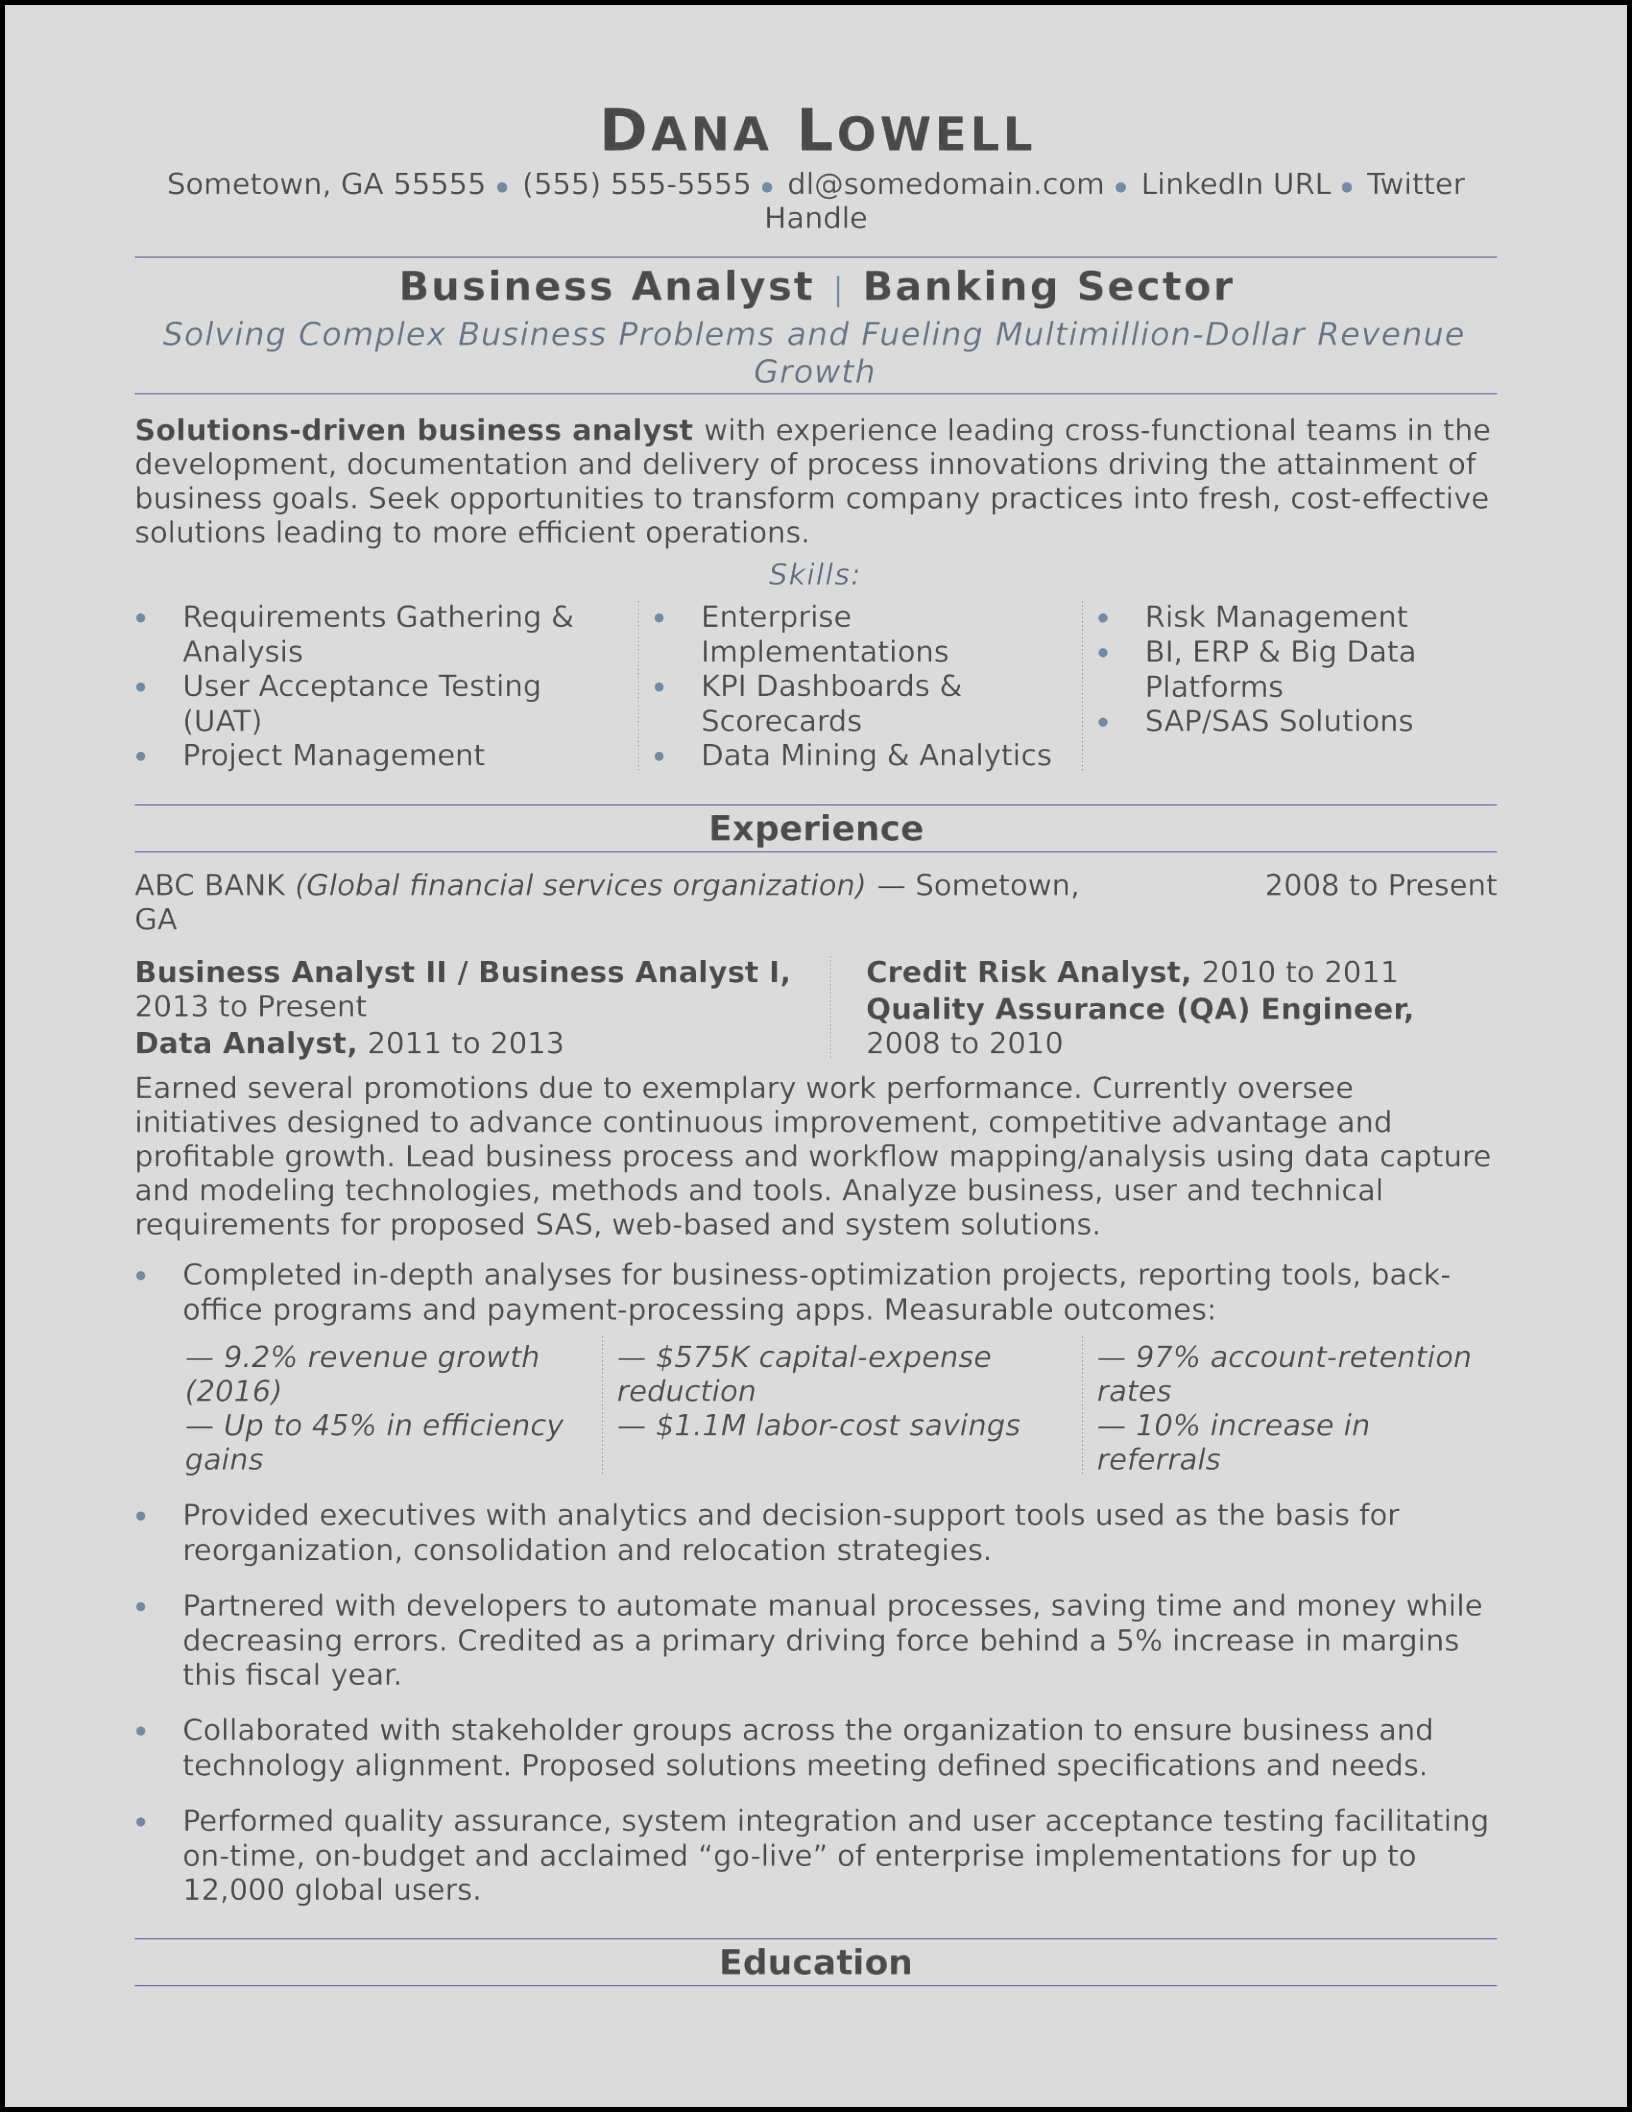 Business Analysis Plan Template Luxury 24 Business Analysis Plan Template Supplychainmeeting